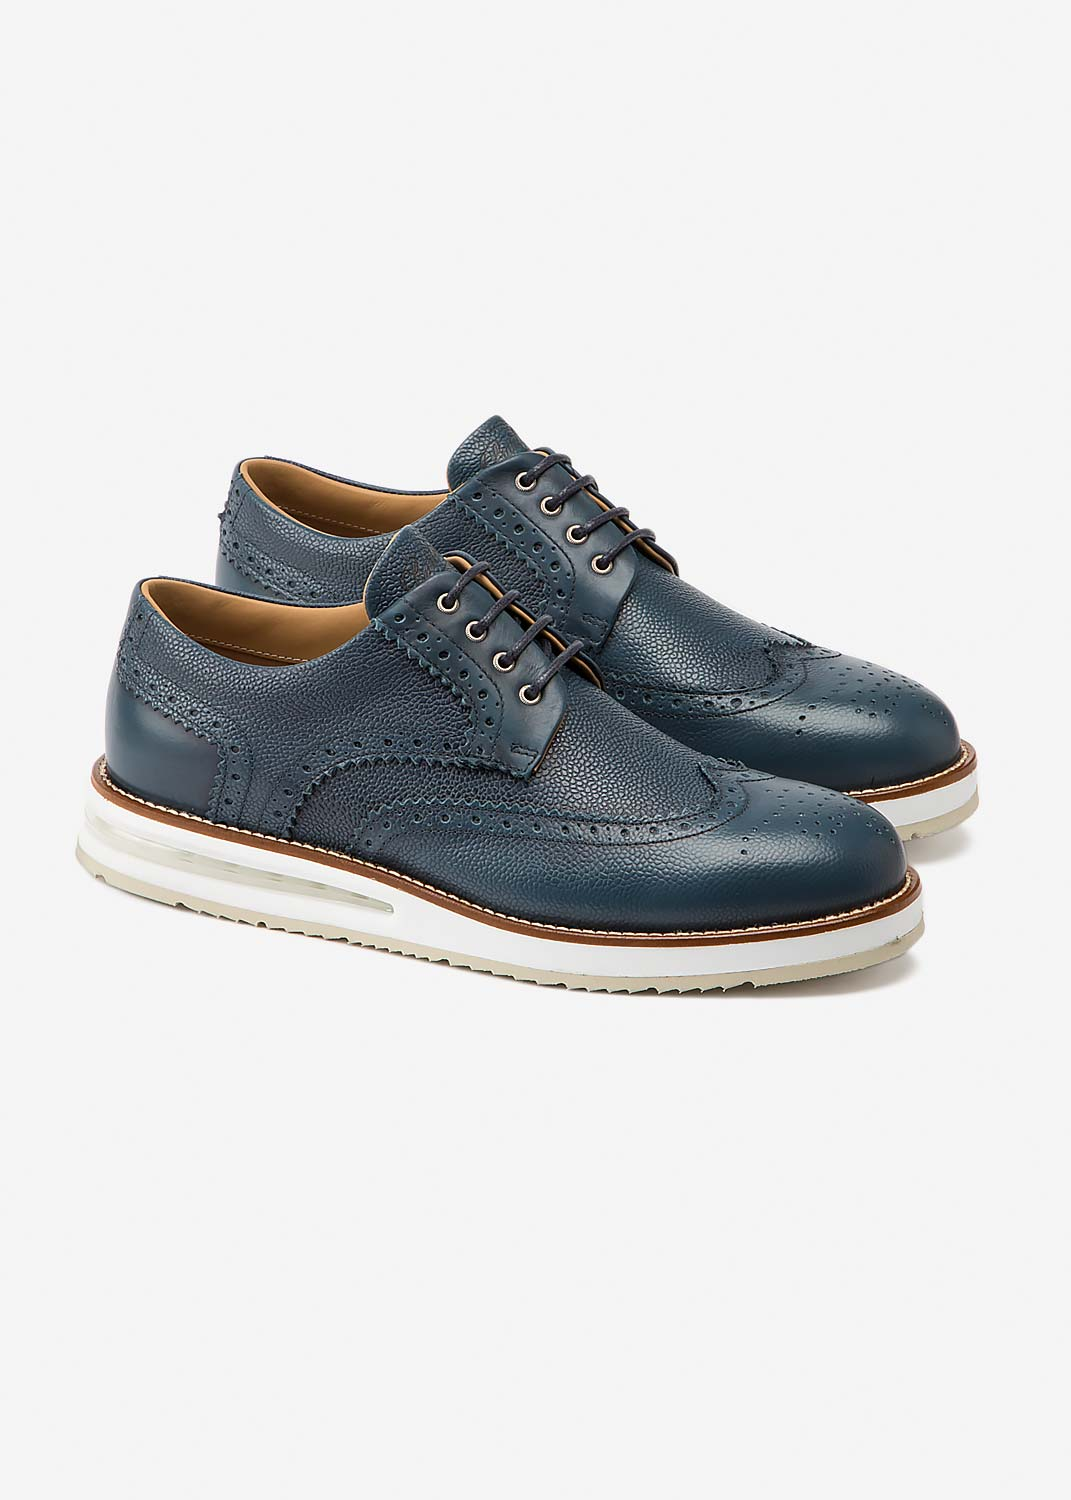 Air Brogue Blue Pebble Grain